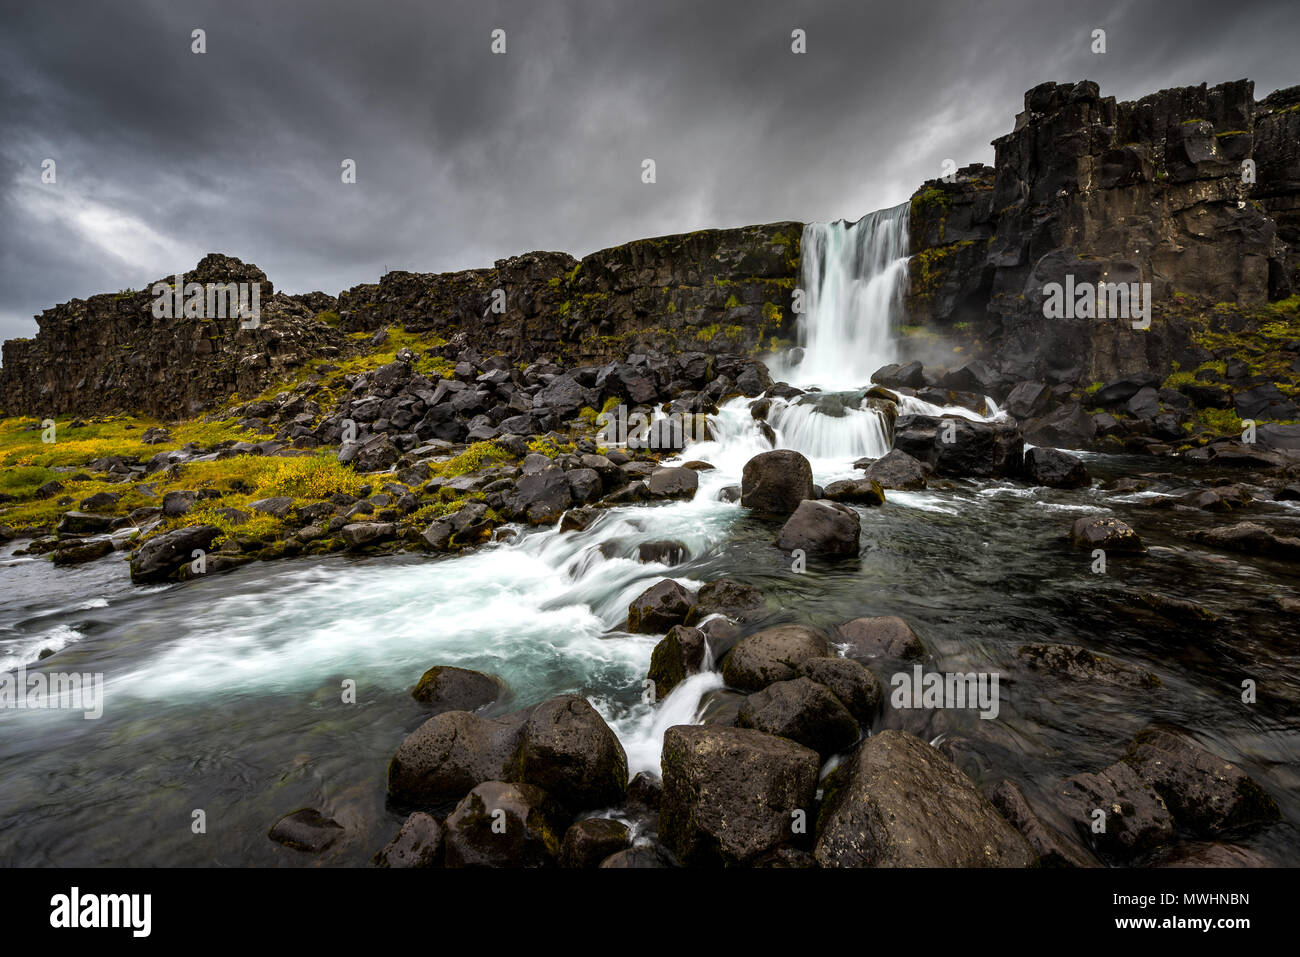 the first of uncountable Waterfalls we encountered in Iceland - Stock Image